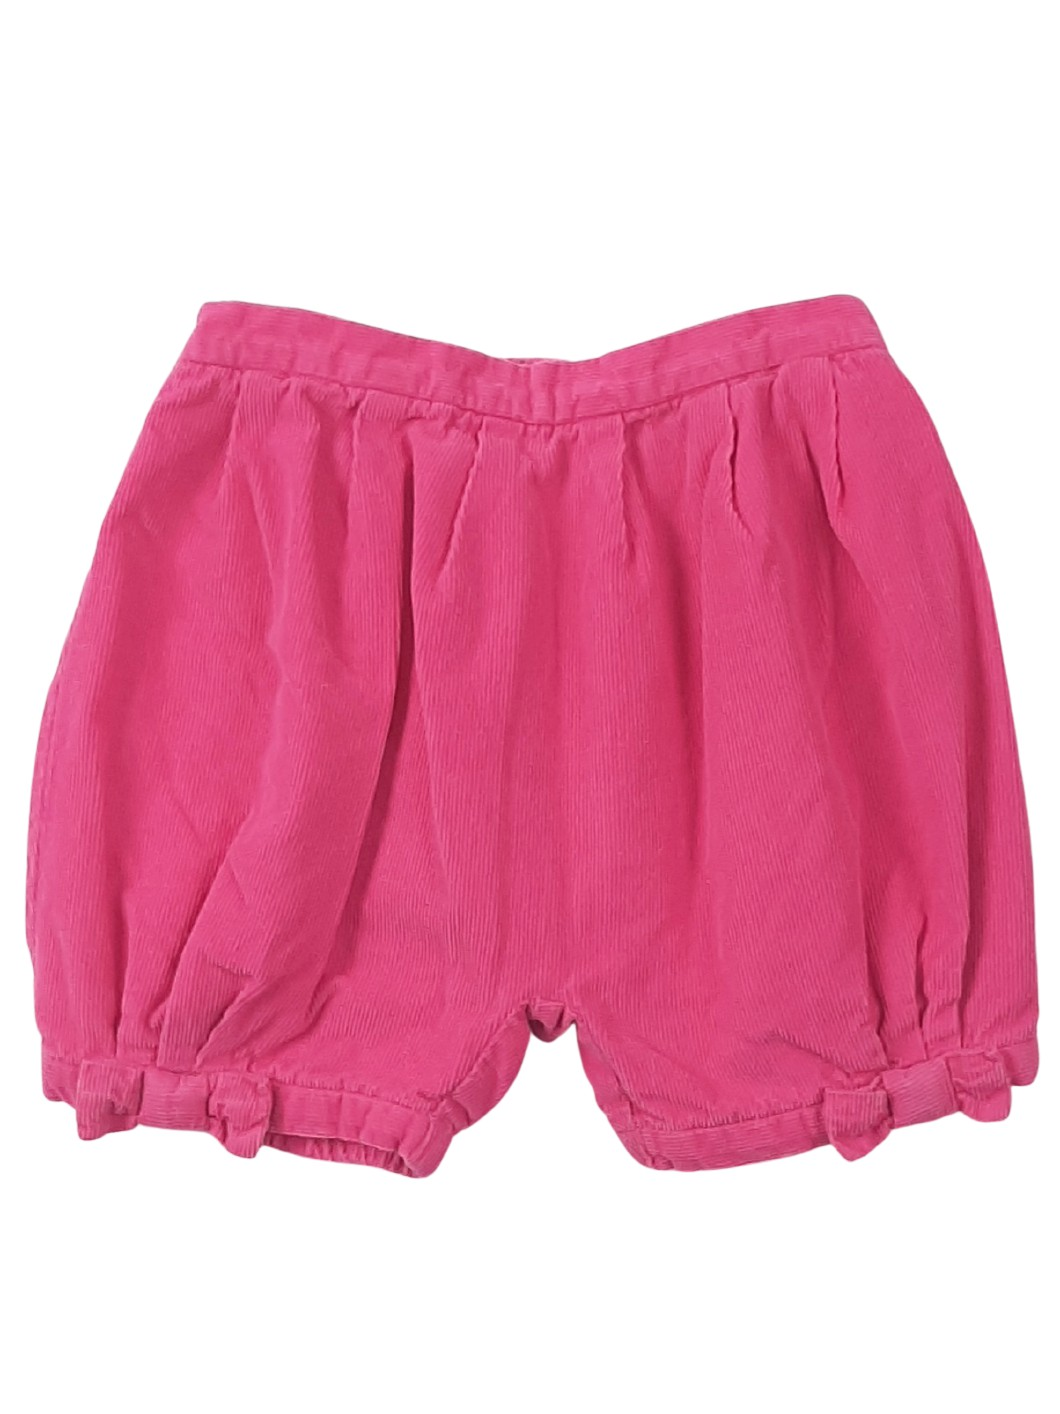 Short en velours doublé 1